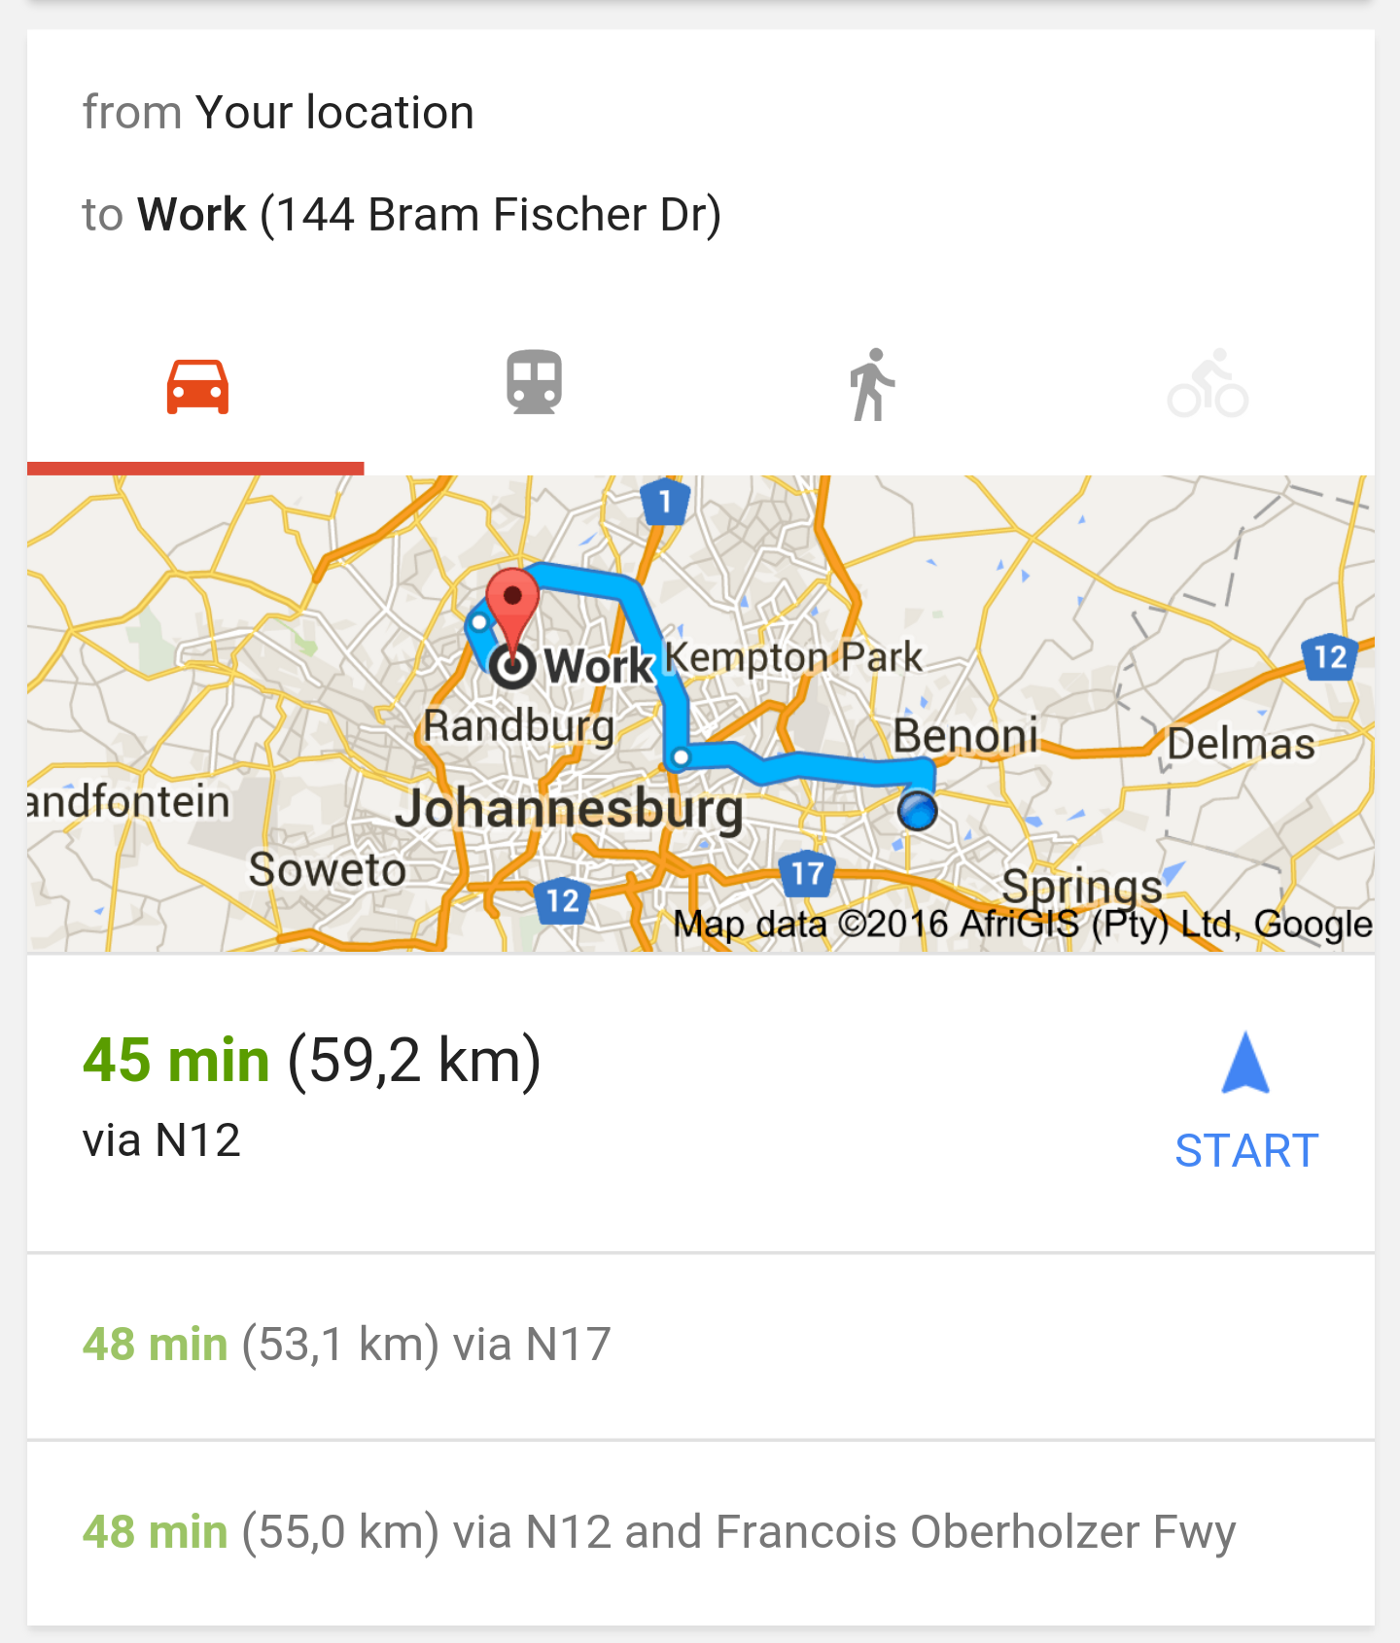 An example of a Google Now card